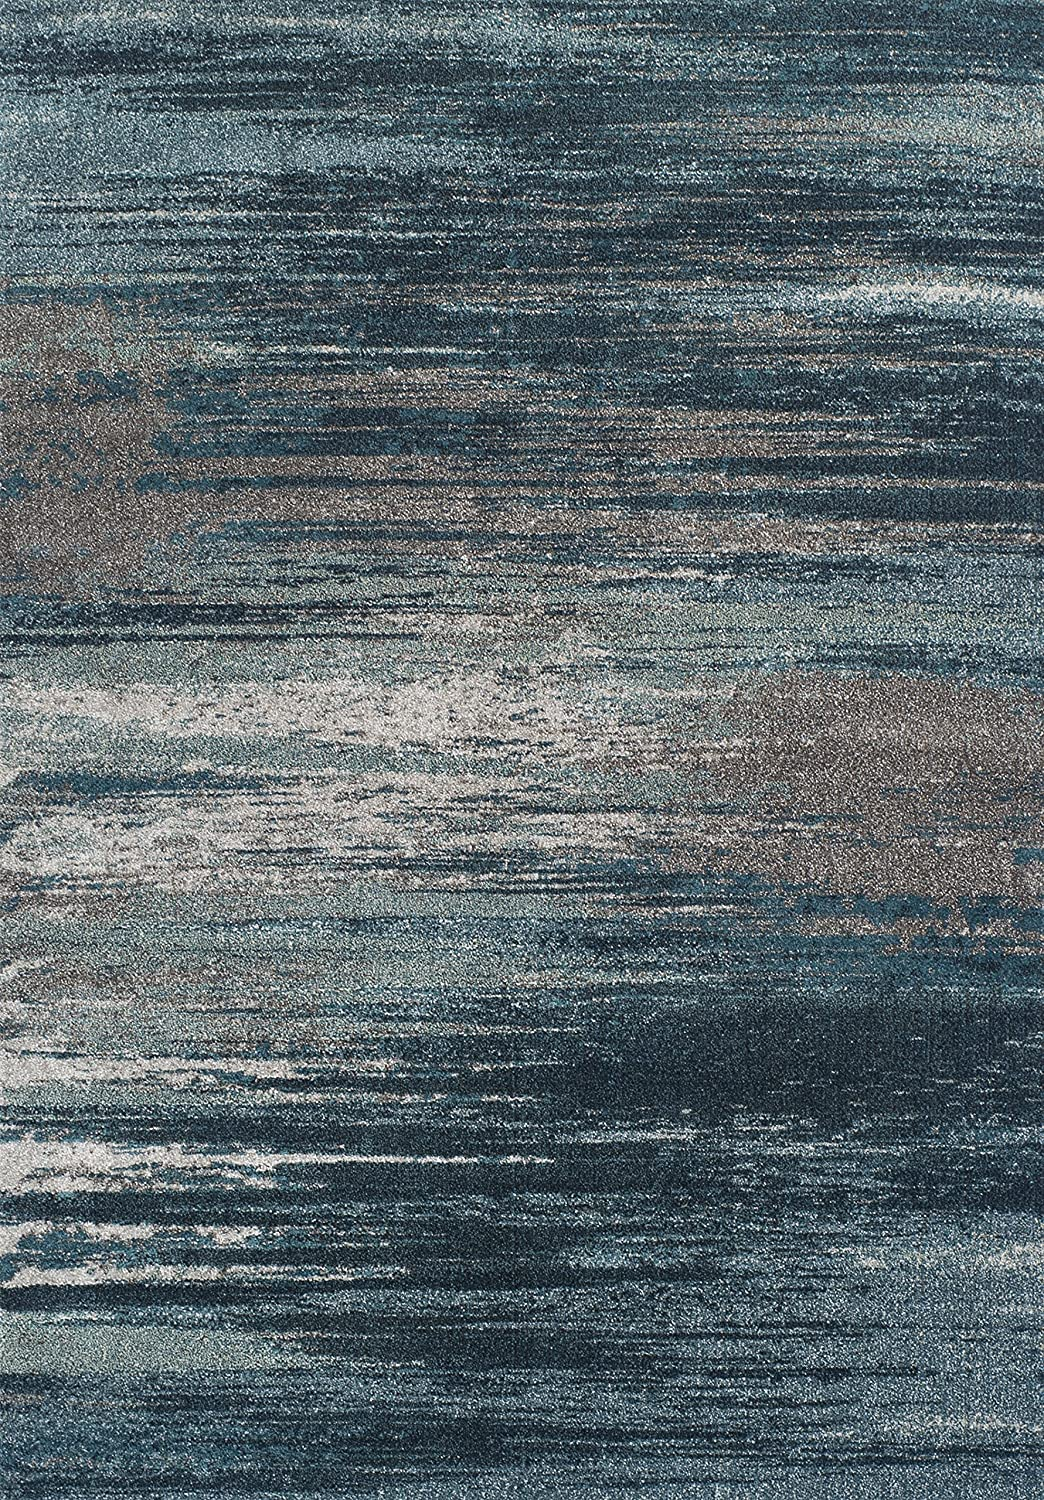 Amazon.com: Dalyn Rugs MG5993TE5X8 Modern Greys Rug, 5'3